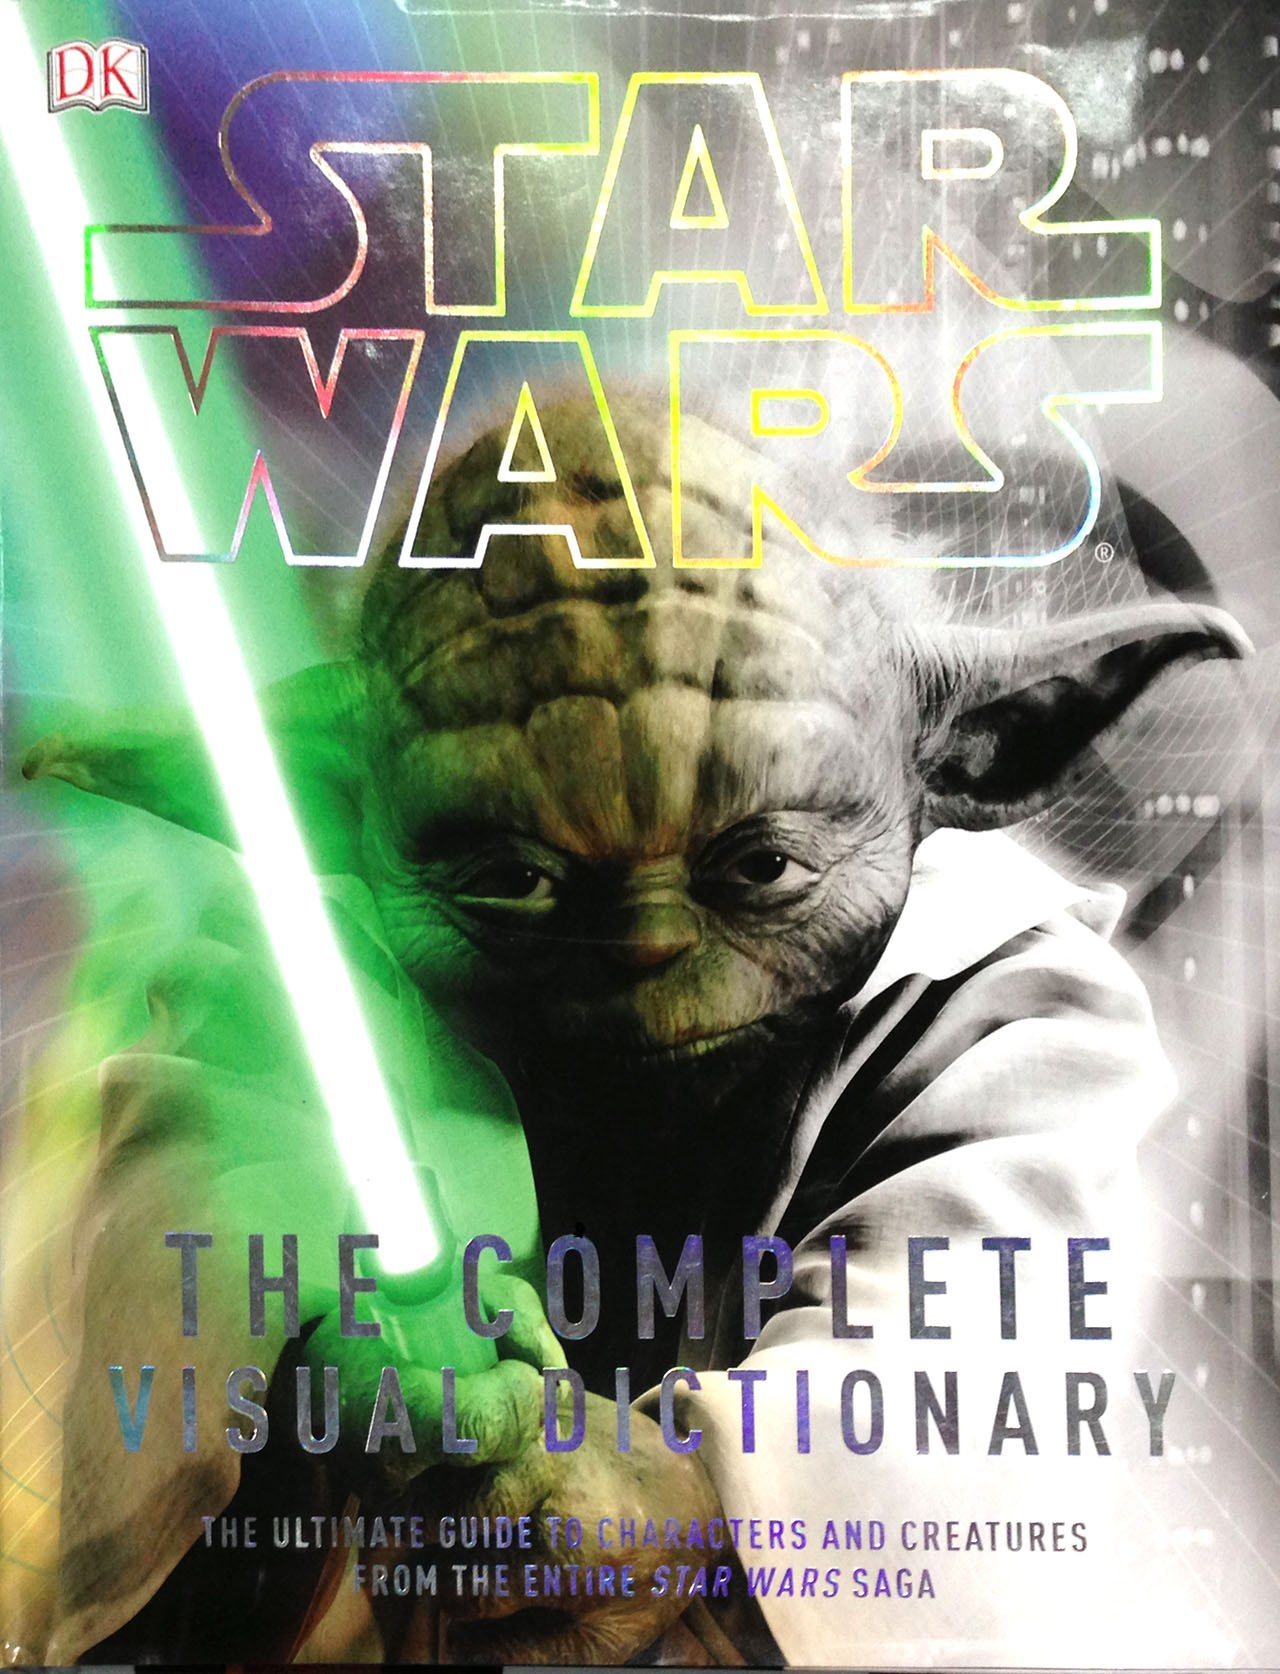 Star Wars: The Complete Visual Dictionary - The Ultimate Guide to Characters and Creatures from the Entire Star Wars Saga by DK Publishing Dorling Kindersley (Image #3)